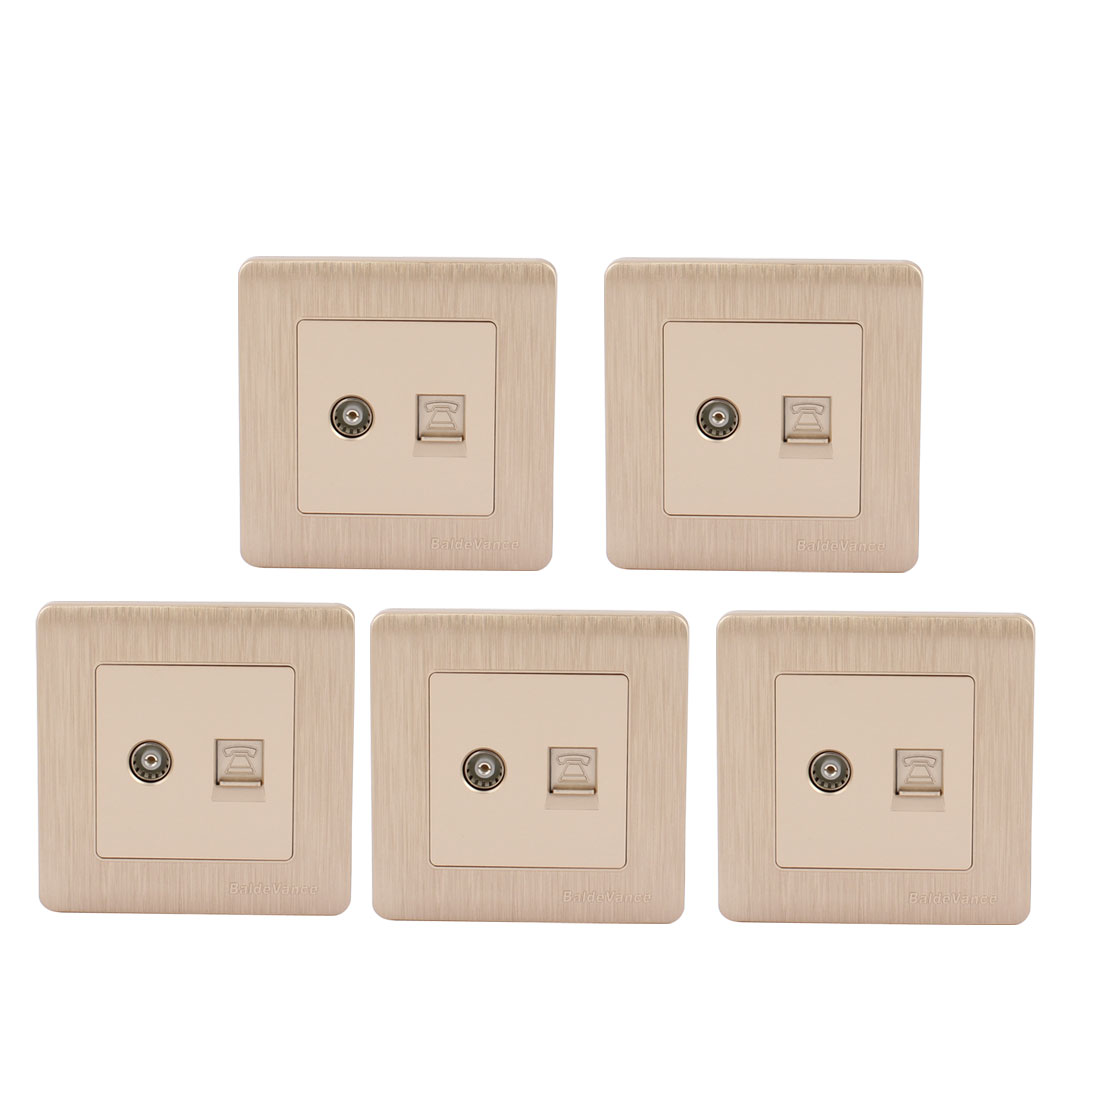 5pcs 1 Port TV/Telephone Socket Outlet Wall Plate Champagne Gold Tone 86mmx86mm